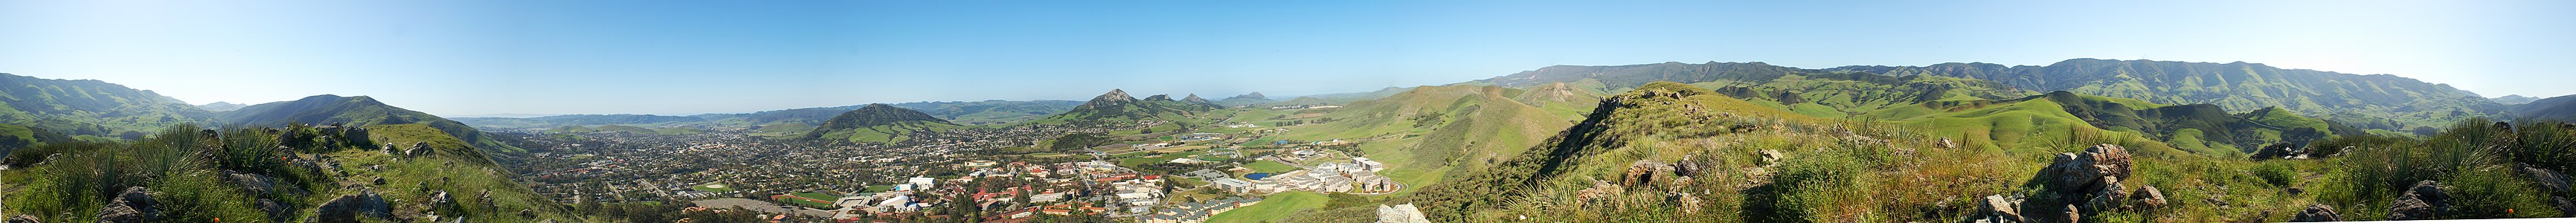 360° panorama of Cal Poly and San Luis Obispo, California taken from the top of Poly Canyon; Cerro San Luis and Bishop Peak in the middle with Cal Poly below